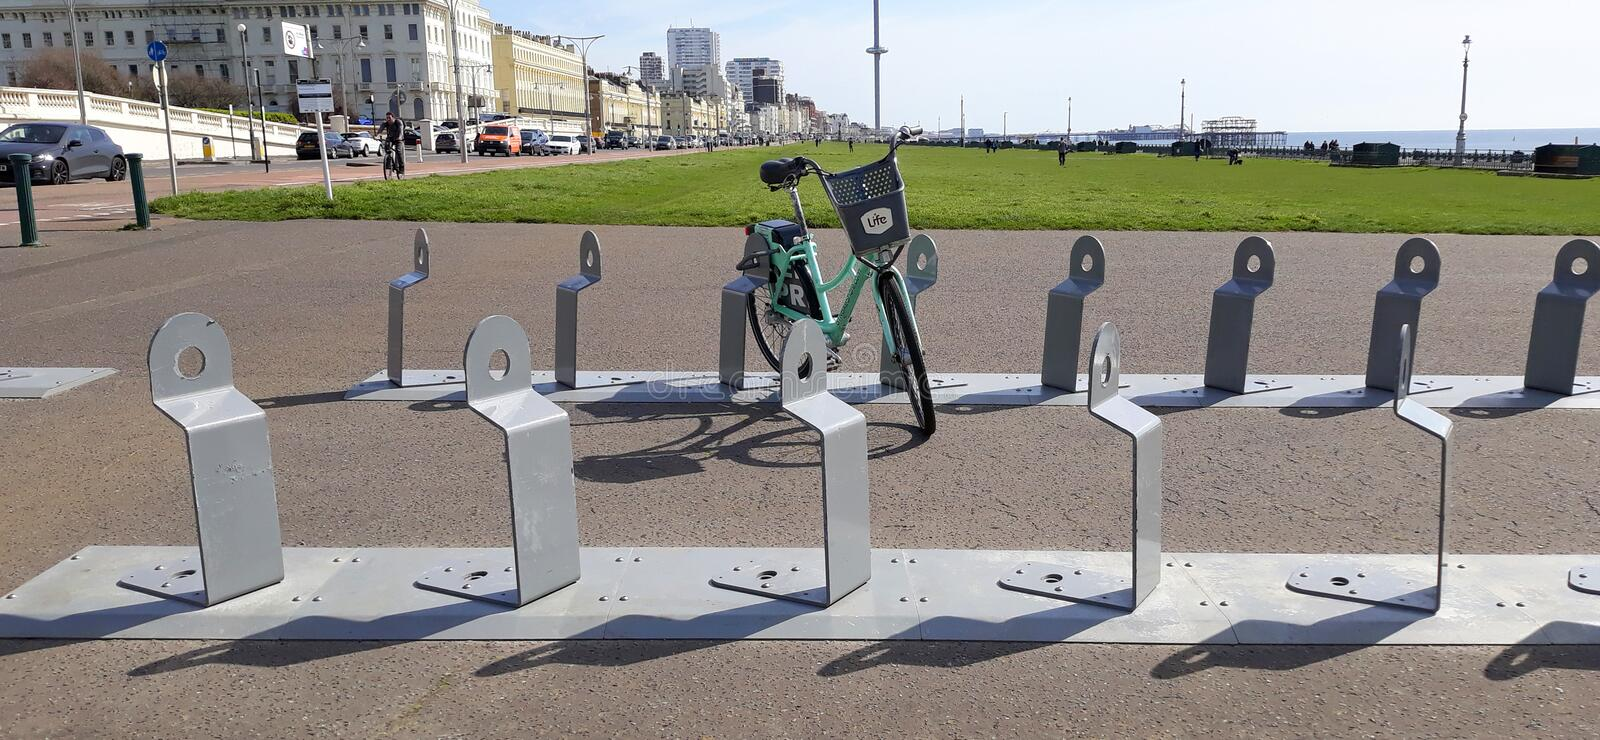 Bicycle parking at Hove Lawns. A bicycle parked on the bicycle parking lot on the row for public hire bikes at Hove Lawns seafront in Hove, Sussex, England royalty free stock image